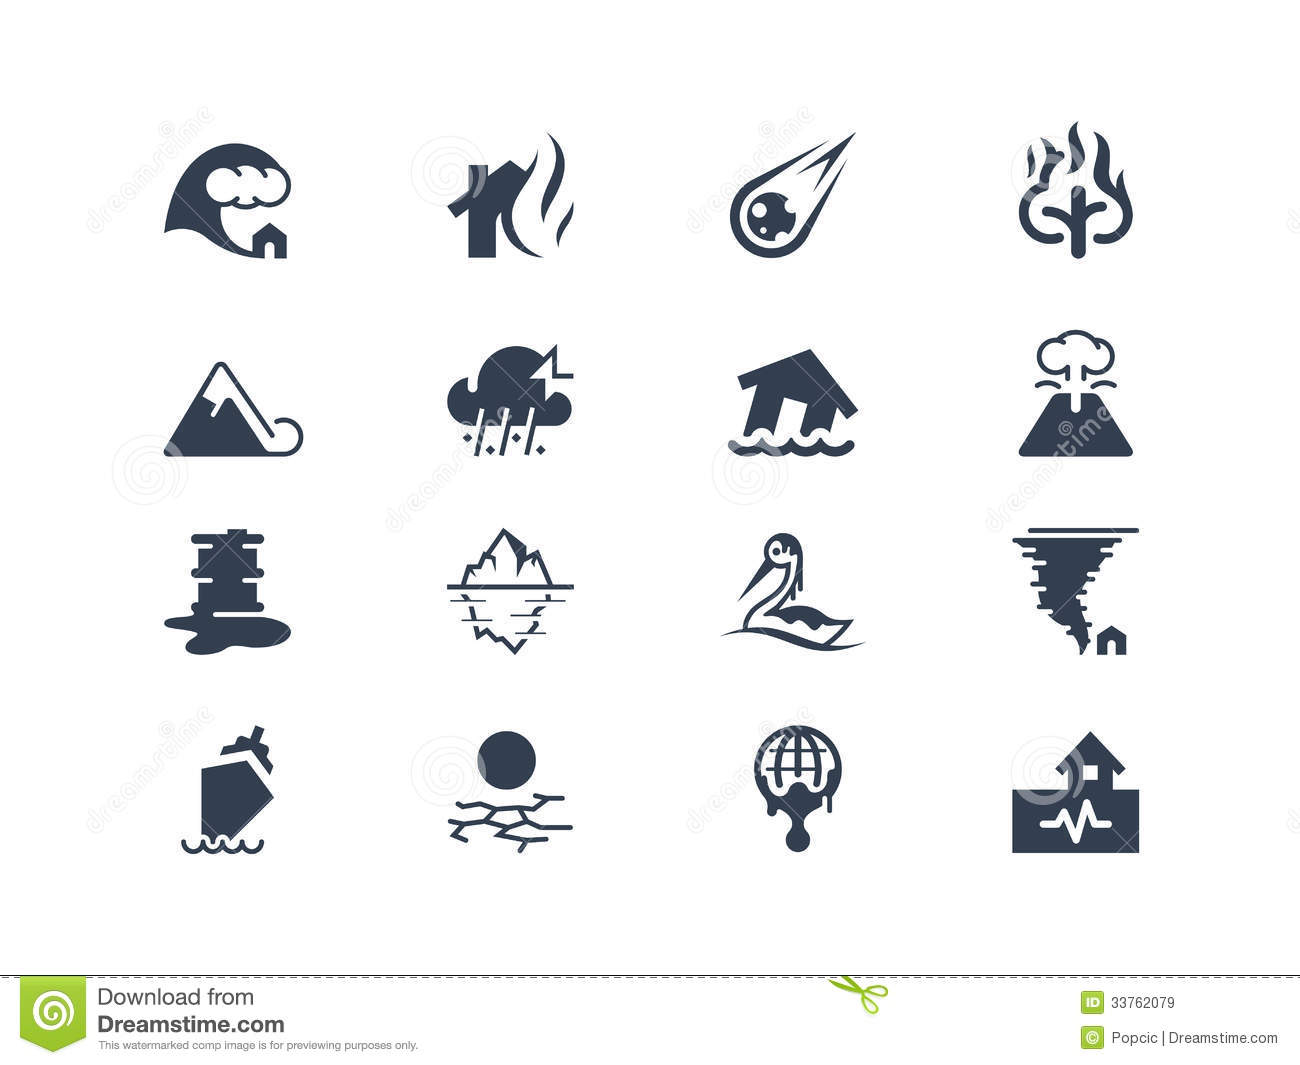 Natural Disaster Icons Royalty Free Stock Images - Image: 33762079 Zoology Pictures Animals